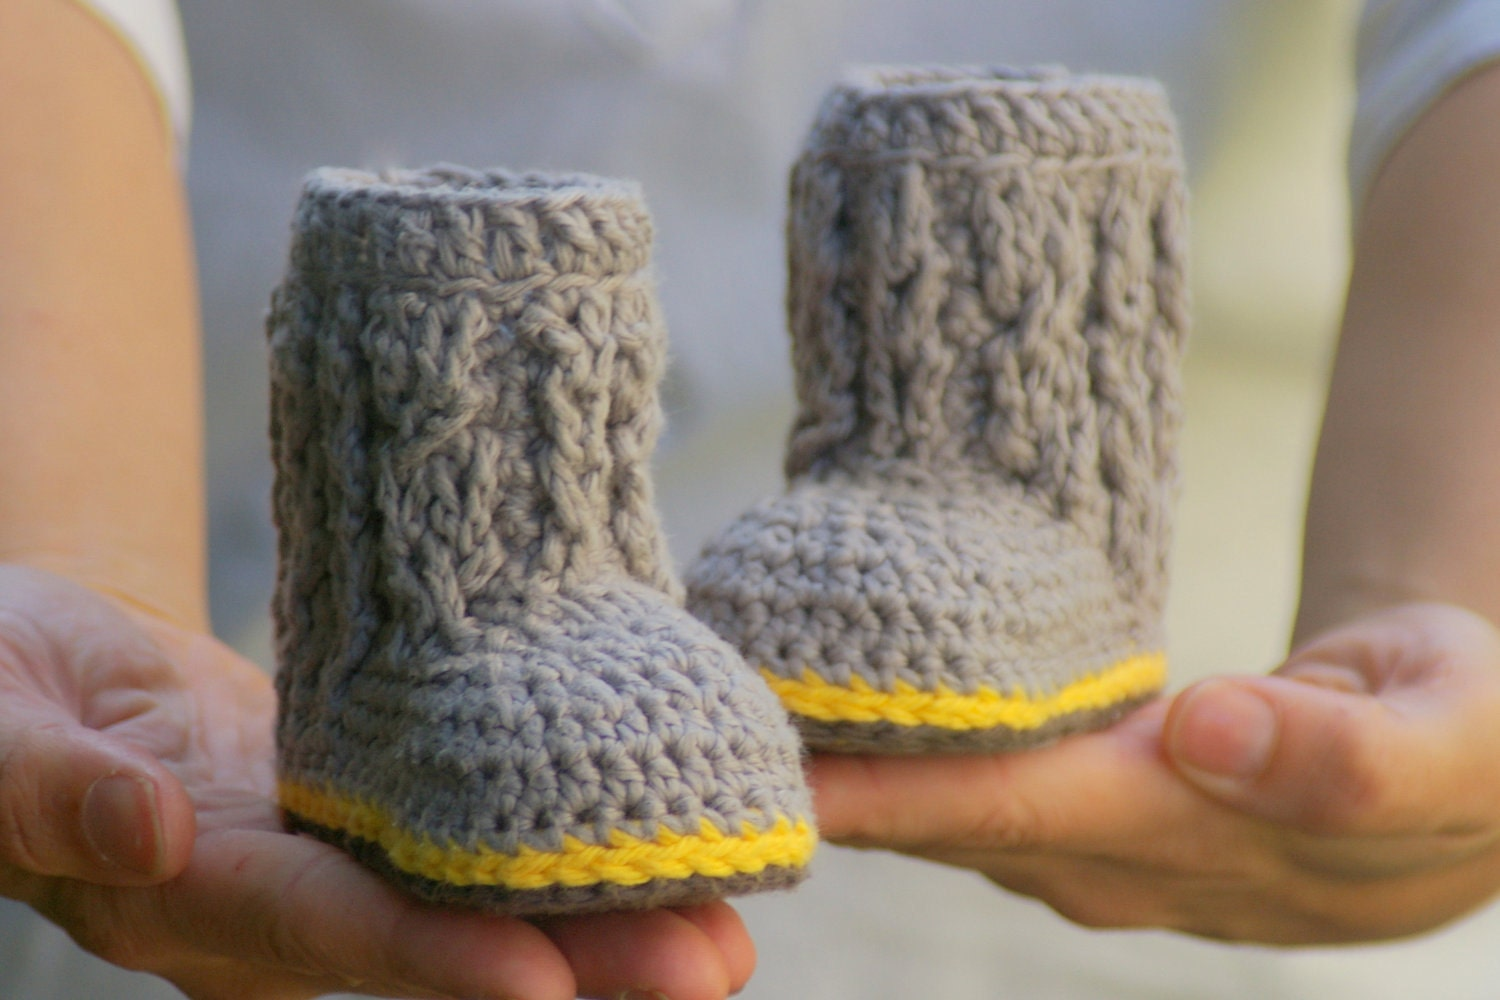 Crochet Baby Booties Pattern With Pictures : Baby Booties Crochet Pattern for Cable Boots Pattern number